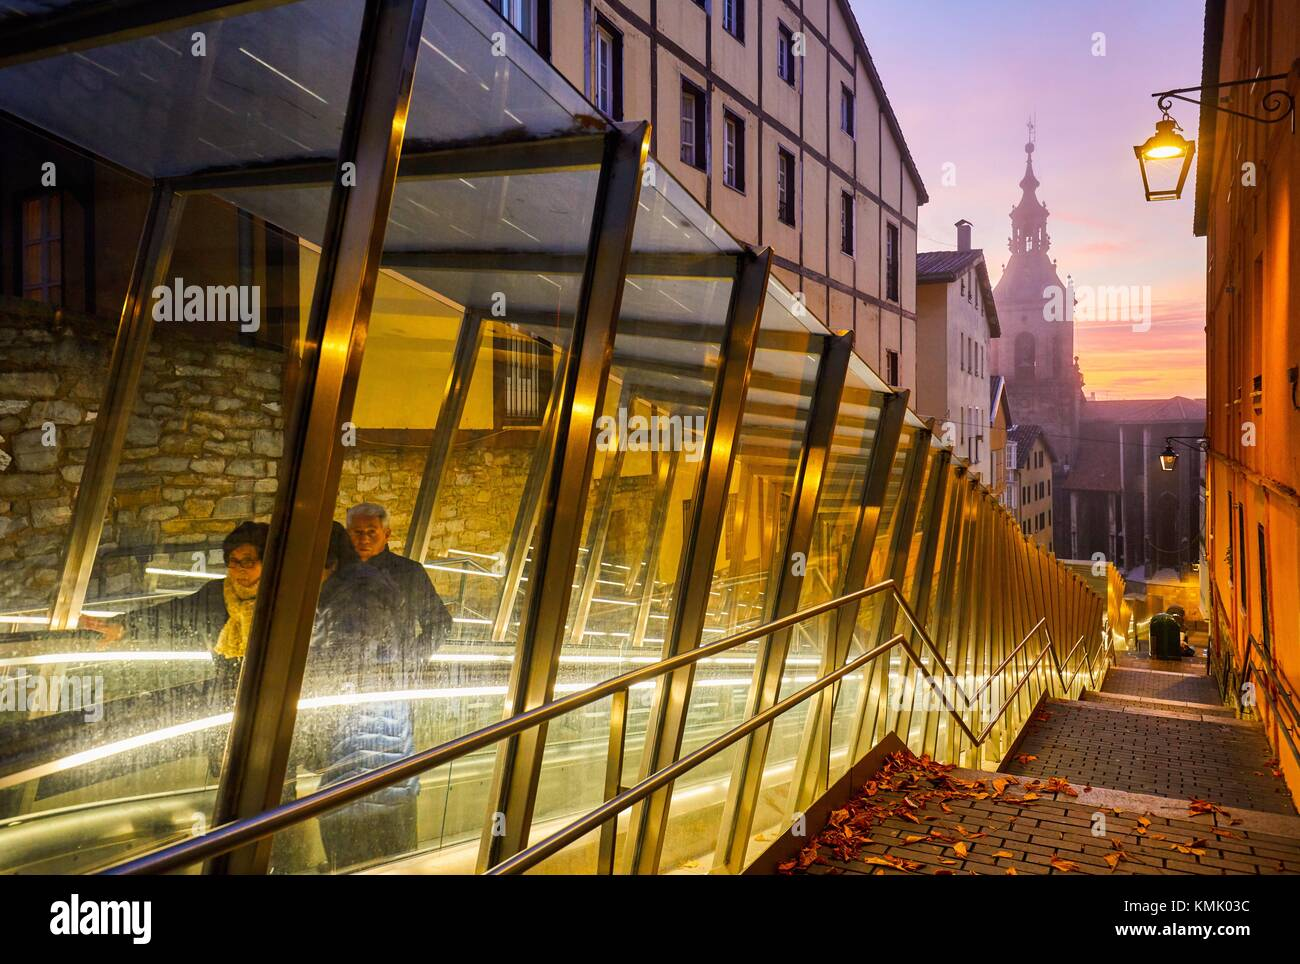 Moving walkway connecting old town with the city, San Pedro Apostol church in background, Vitoria-Gasteiz, Araba, - Stock Image